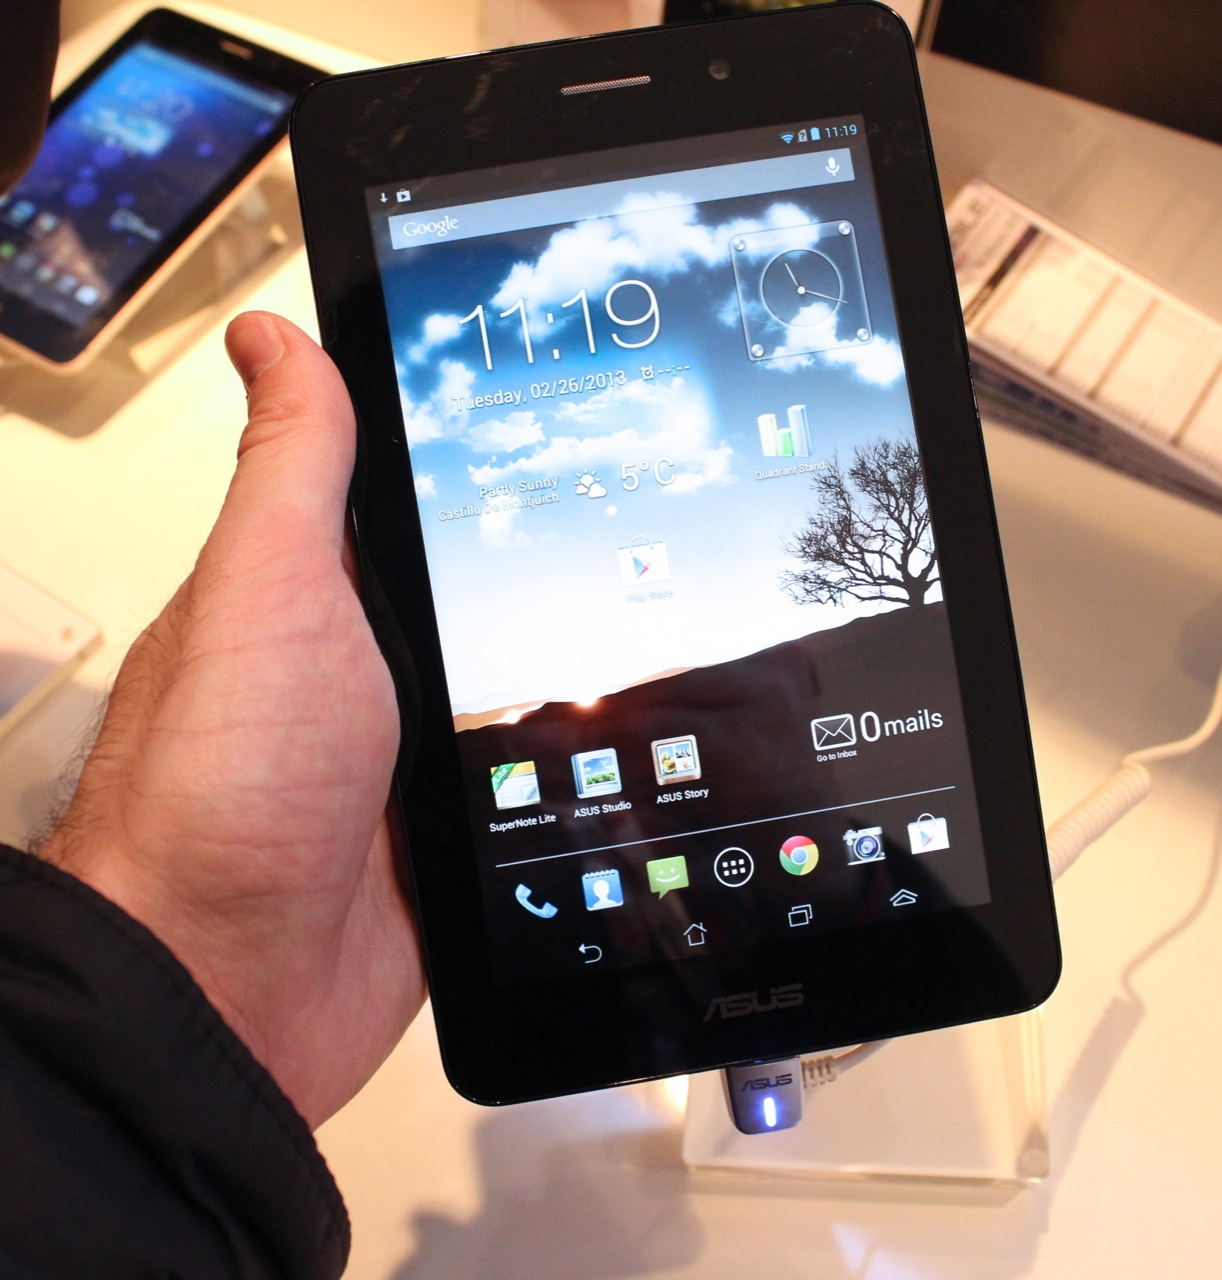 The Asus FonePad runs Android 4.1 on an Intel processor and will let you make phone calls; otherwise it's very Nexus 7-like.